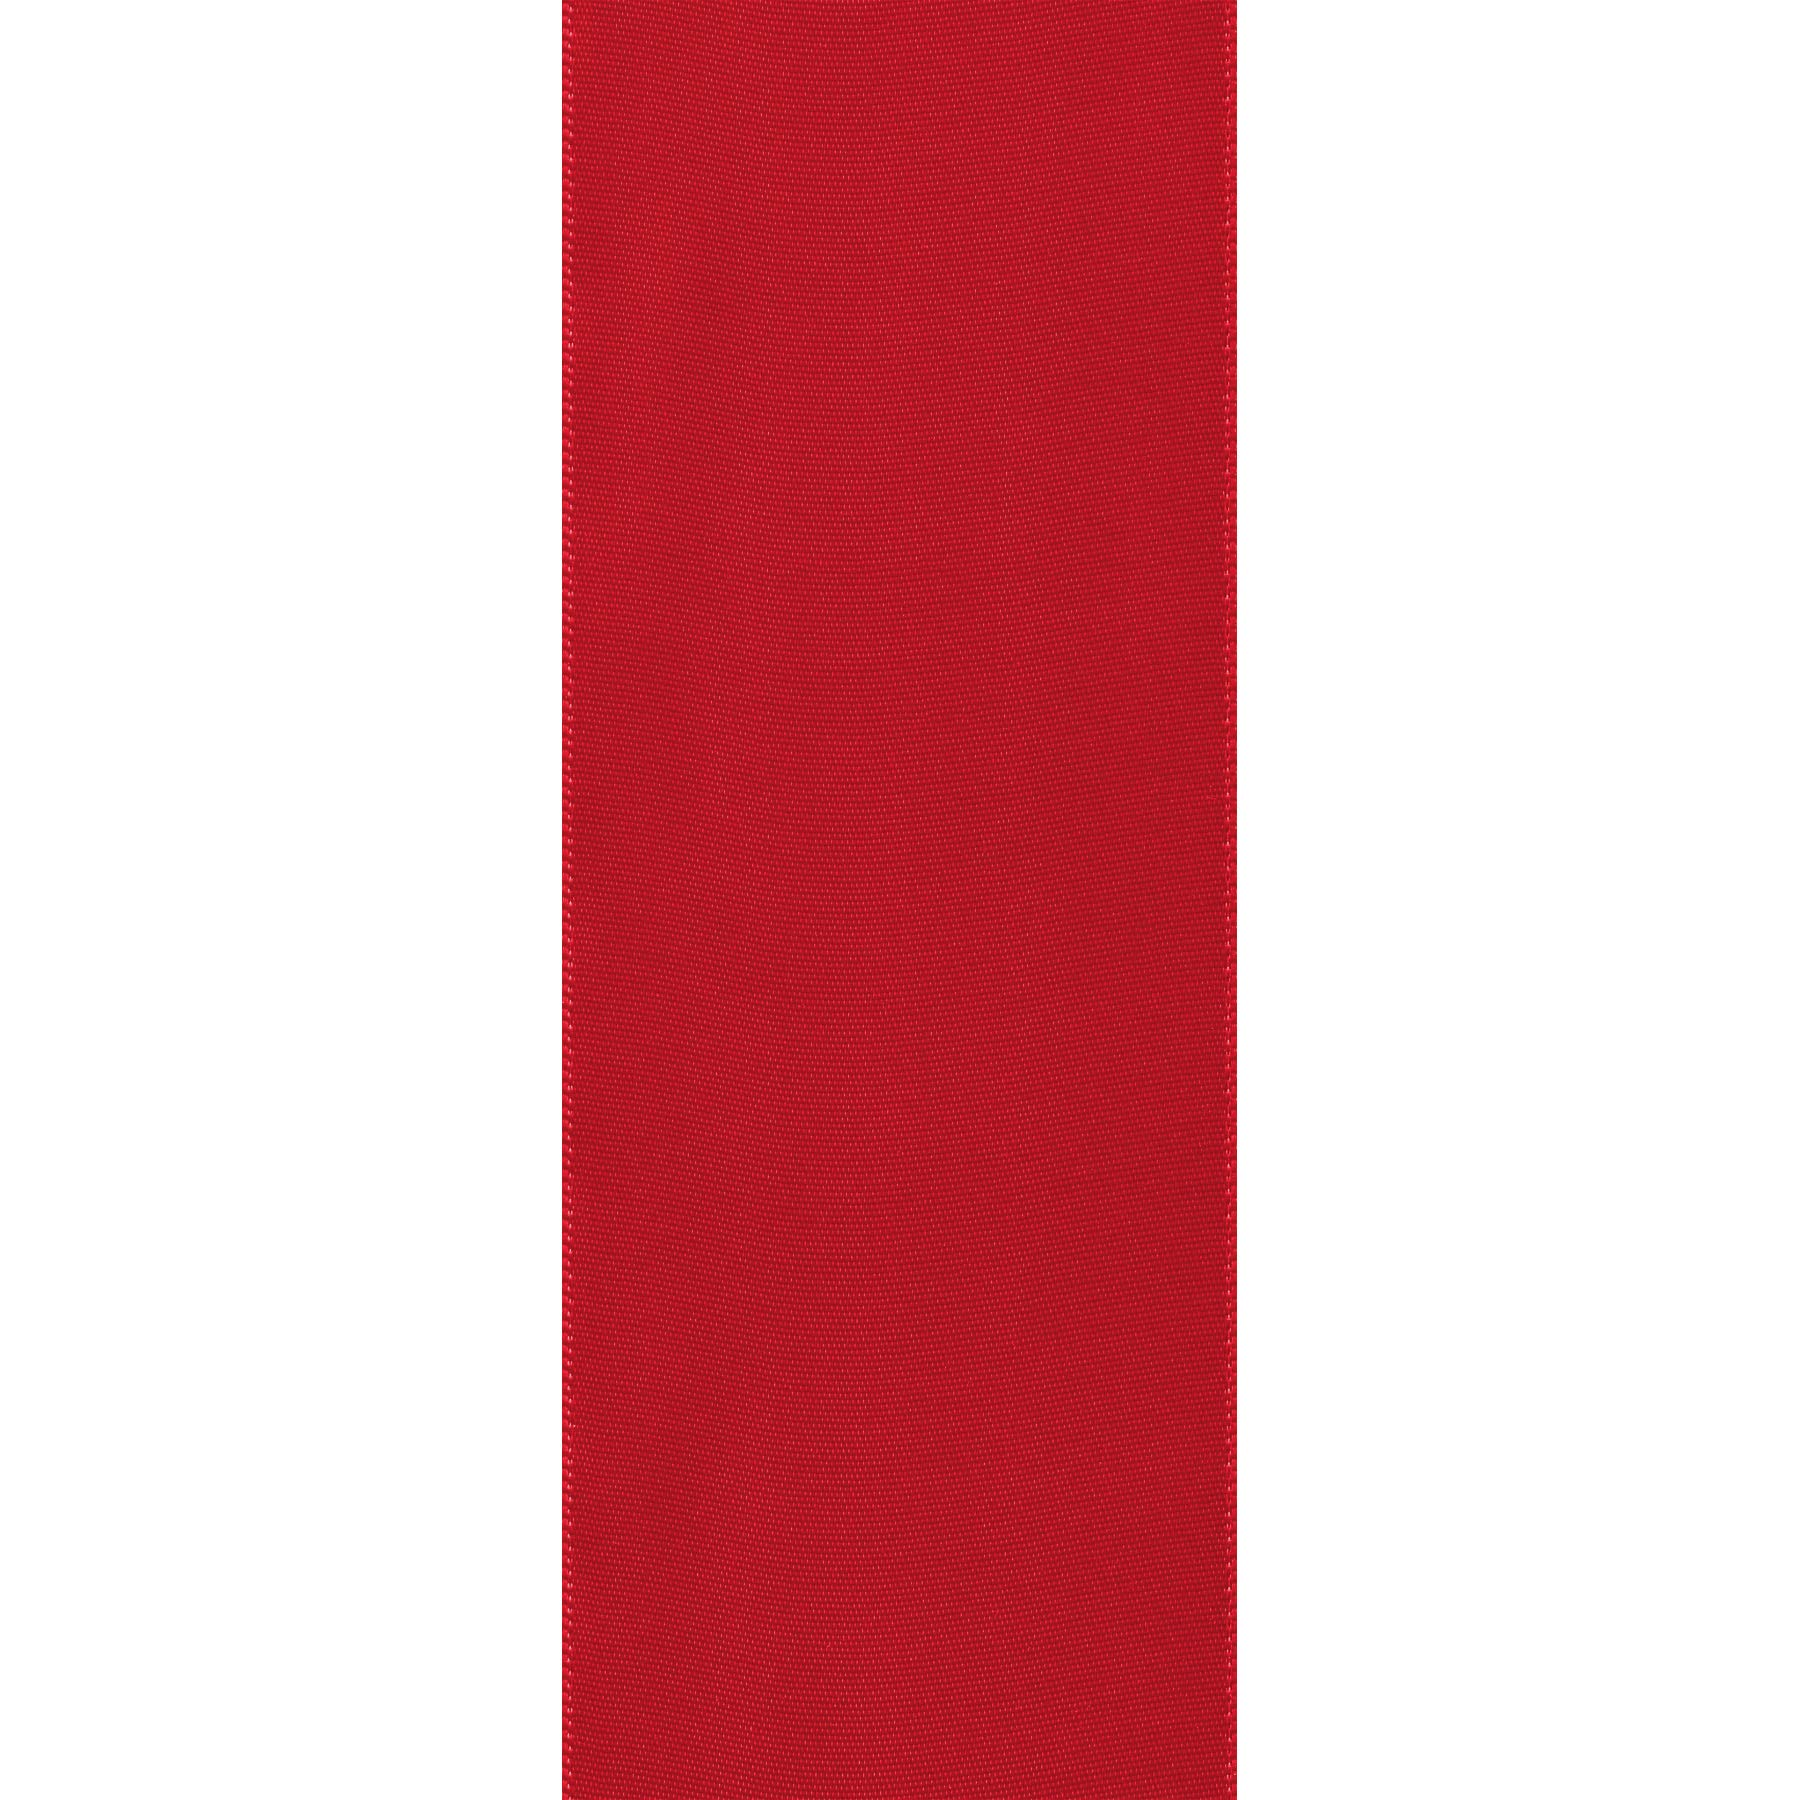 Offray Berwick 2.25'' Single Face Satin Ribbon, Red, 10 Yds by Offray (Image #4)